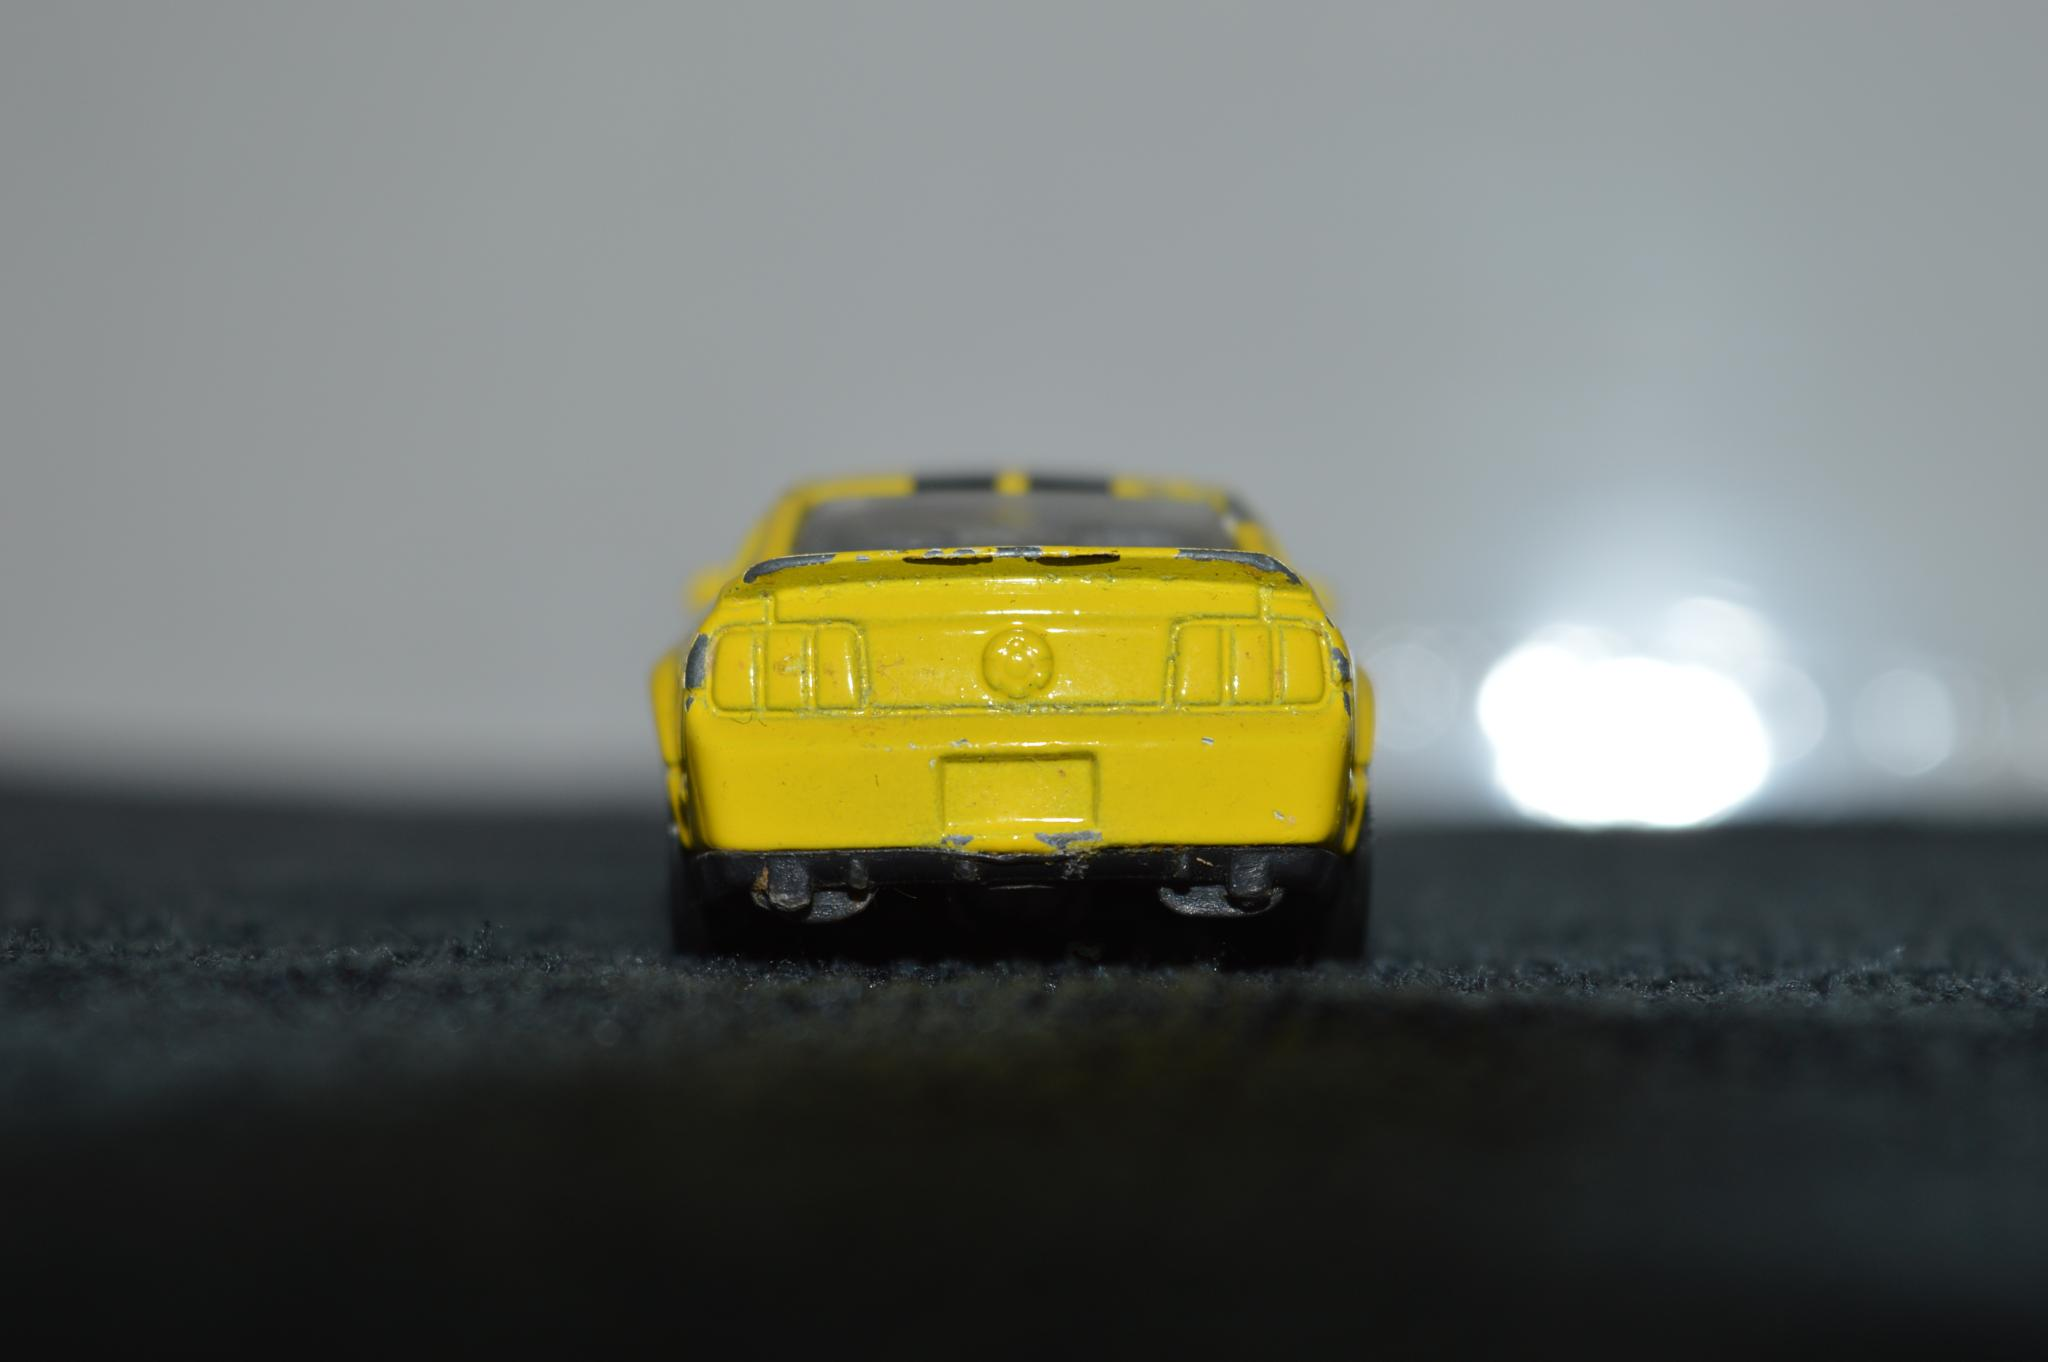 Model Ford Mustang by GeorgeSmith Photography